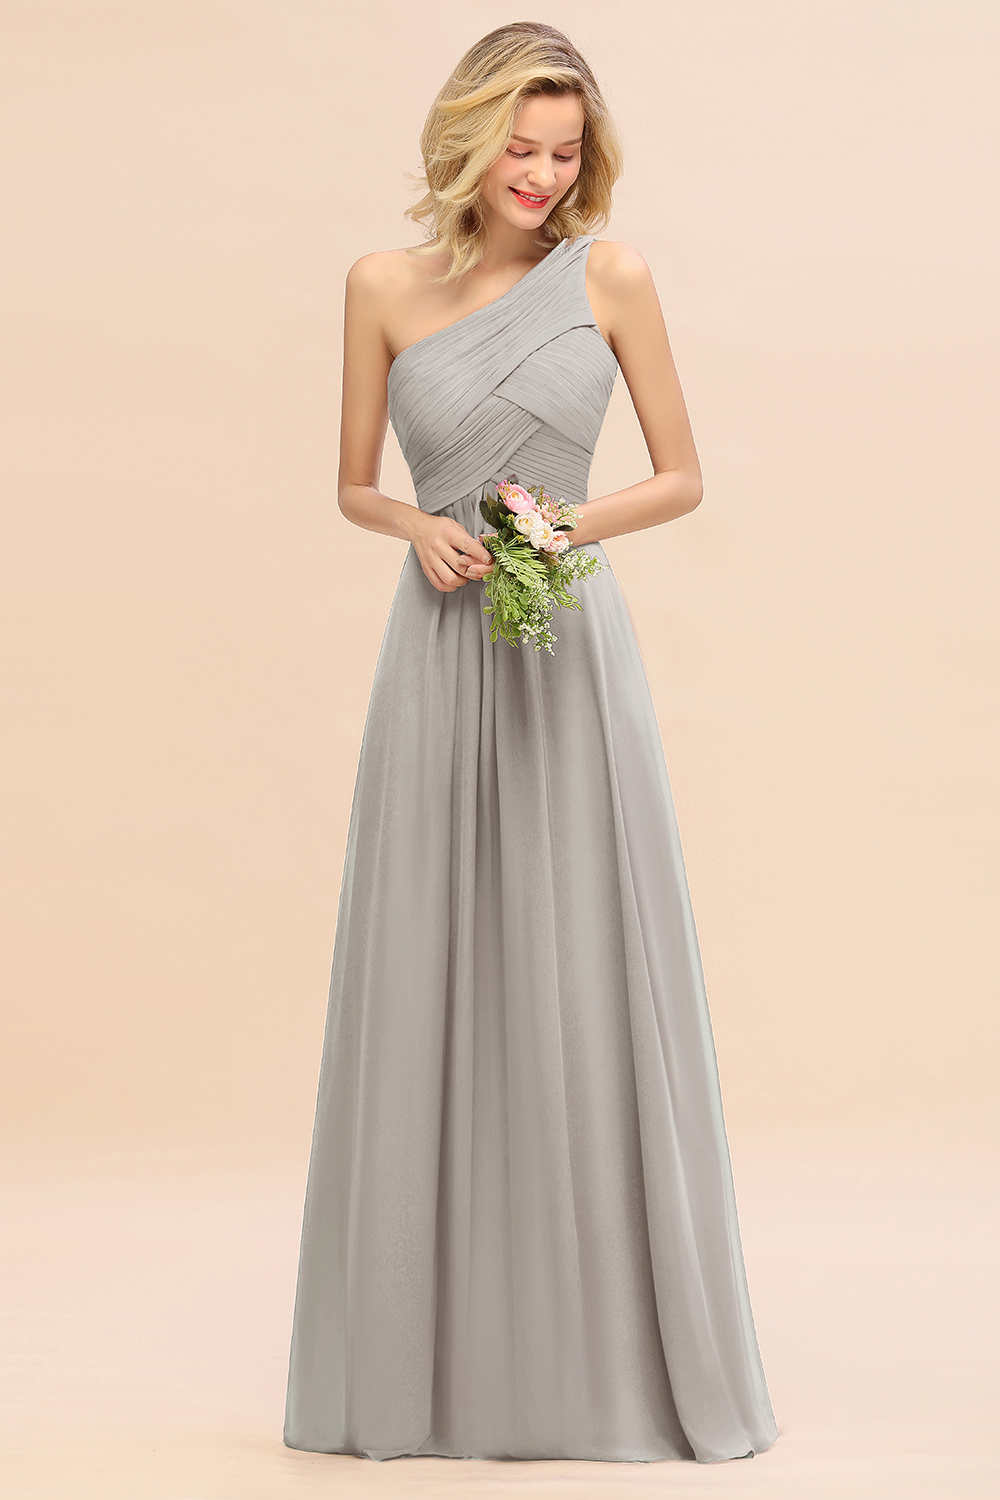 BMbridal Chic One Shoulder Ruffle Grape Chiffon Bridesmaid Dresses Online